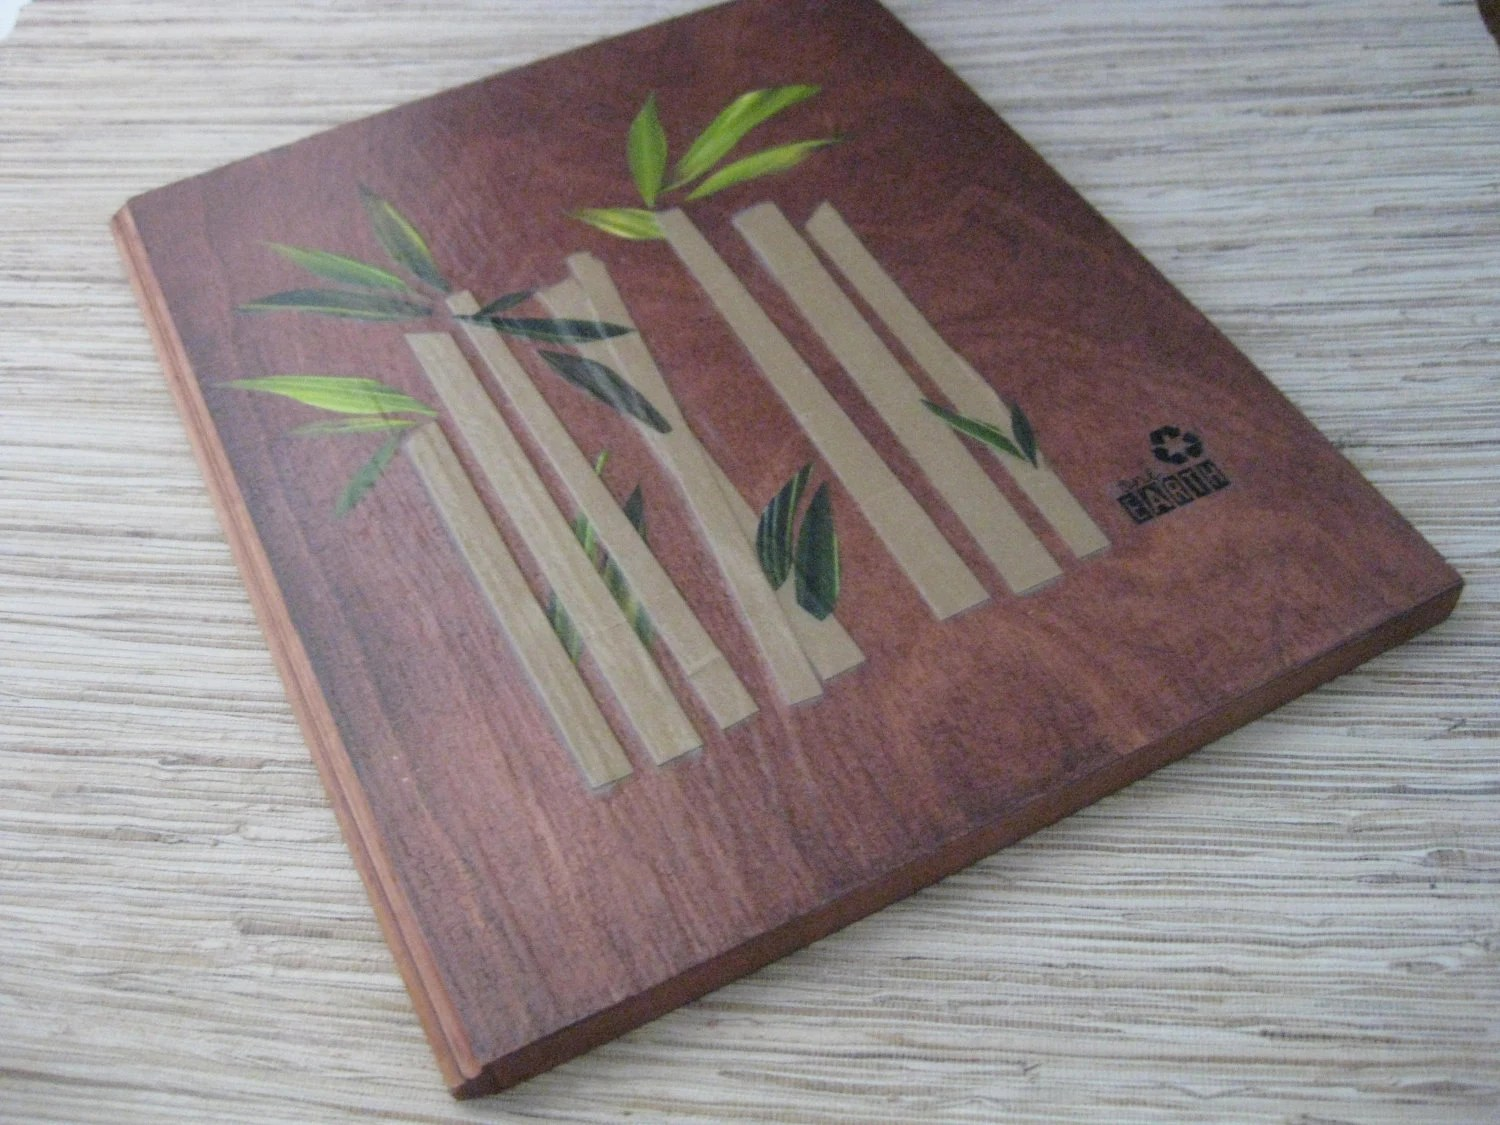 Wall Art made from recycled wood & materials - Bamboo Zen 5 dollar shipping sale